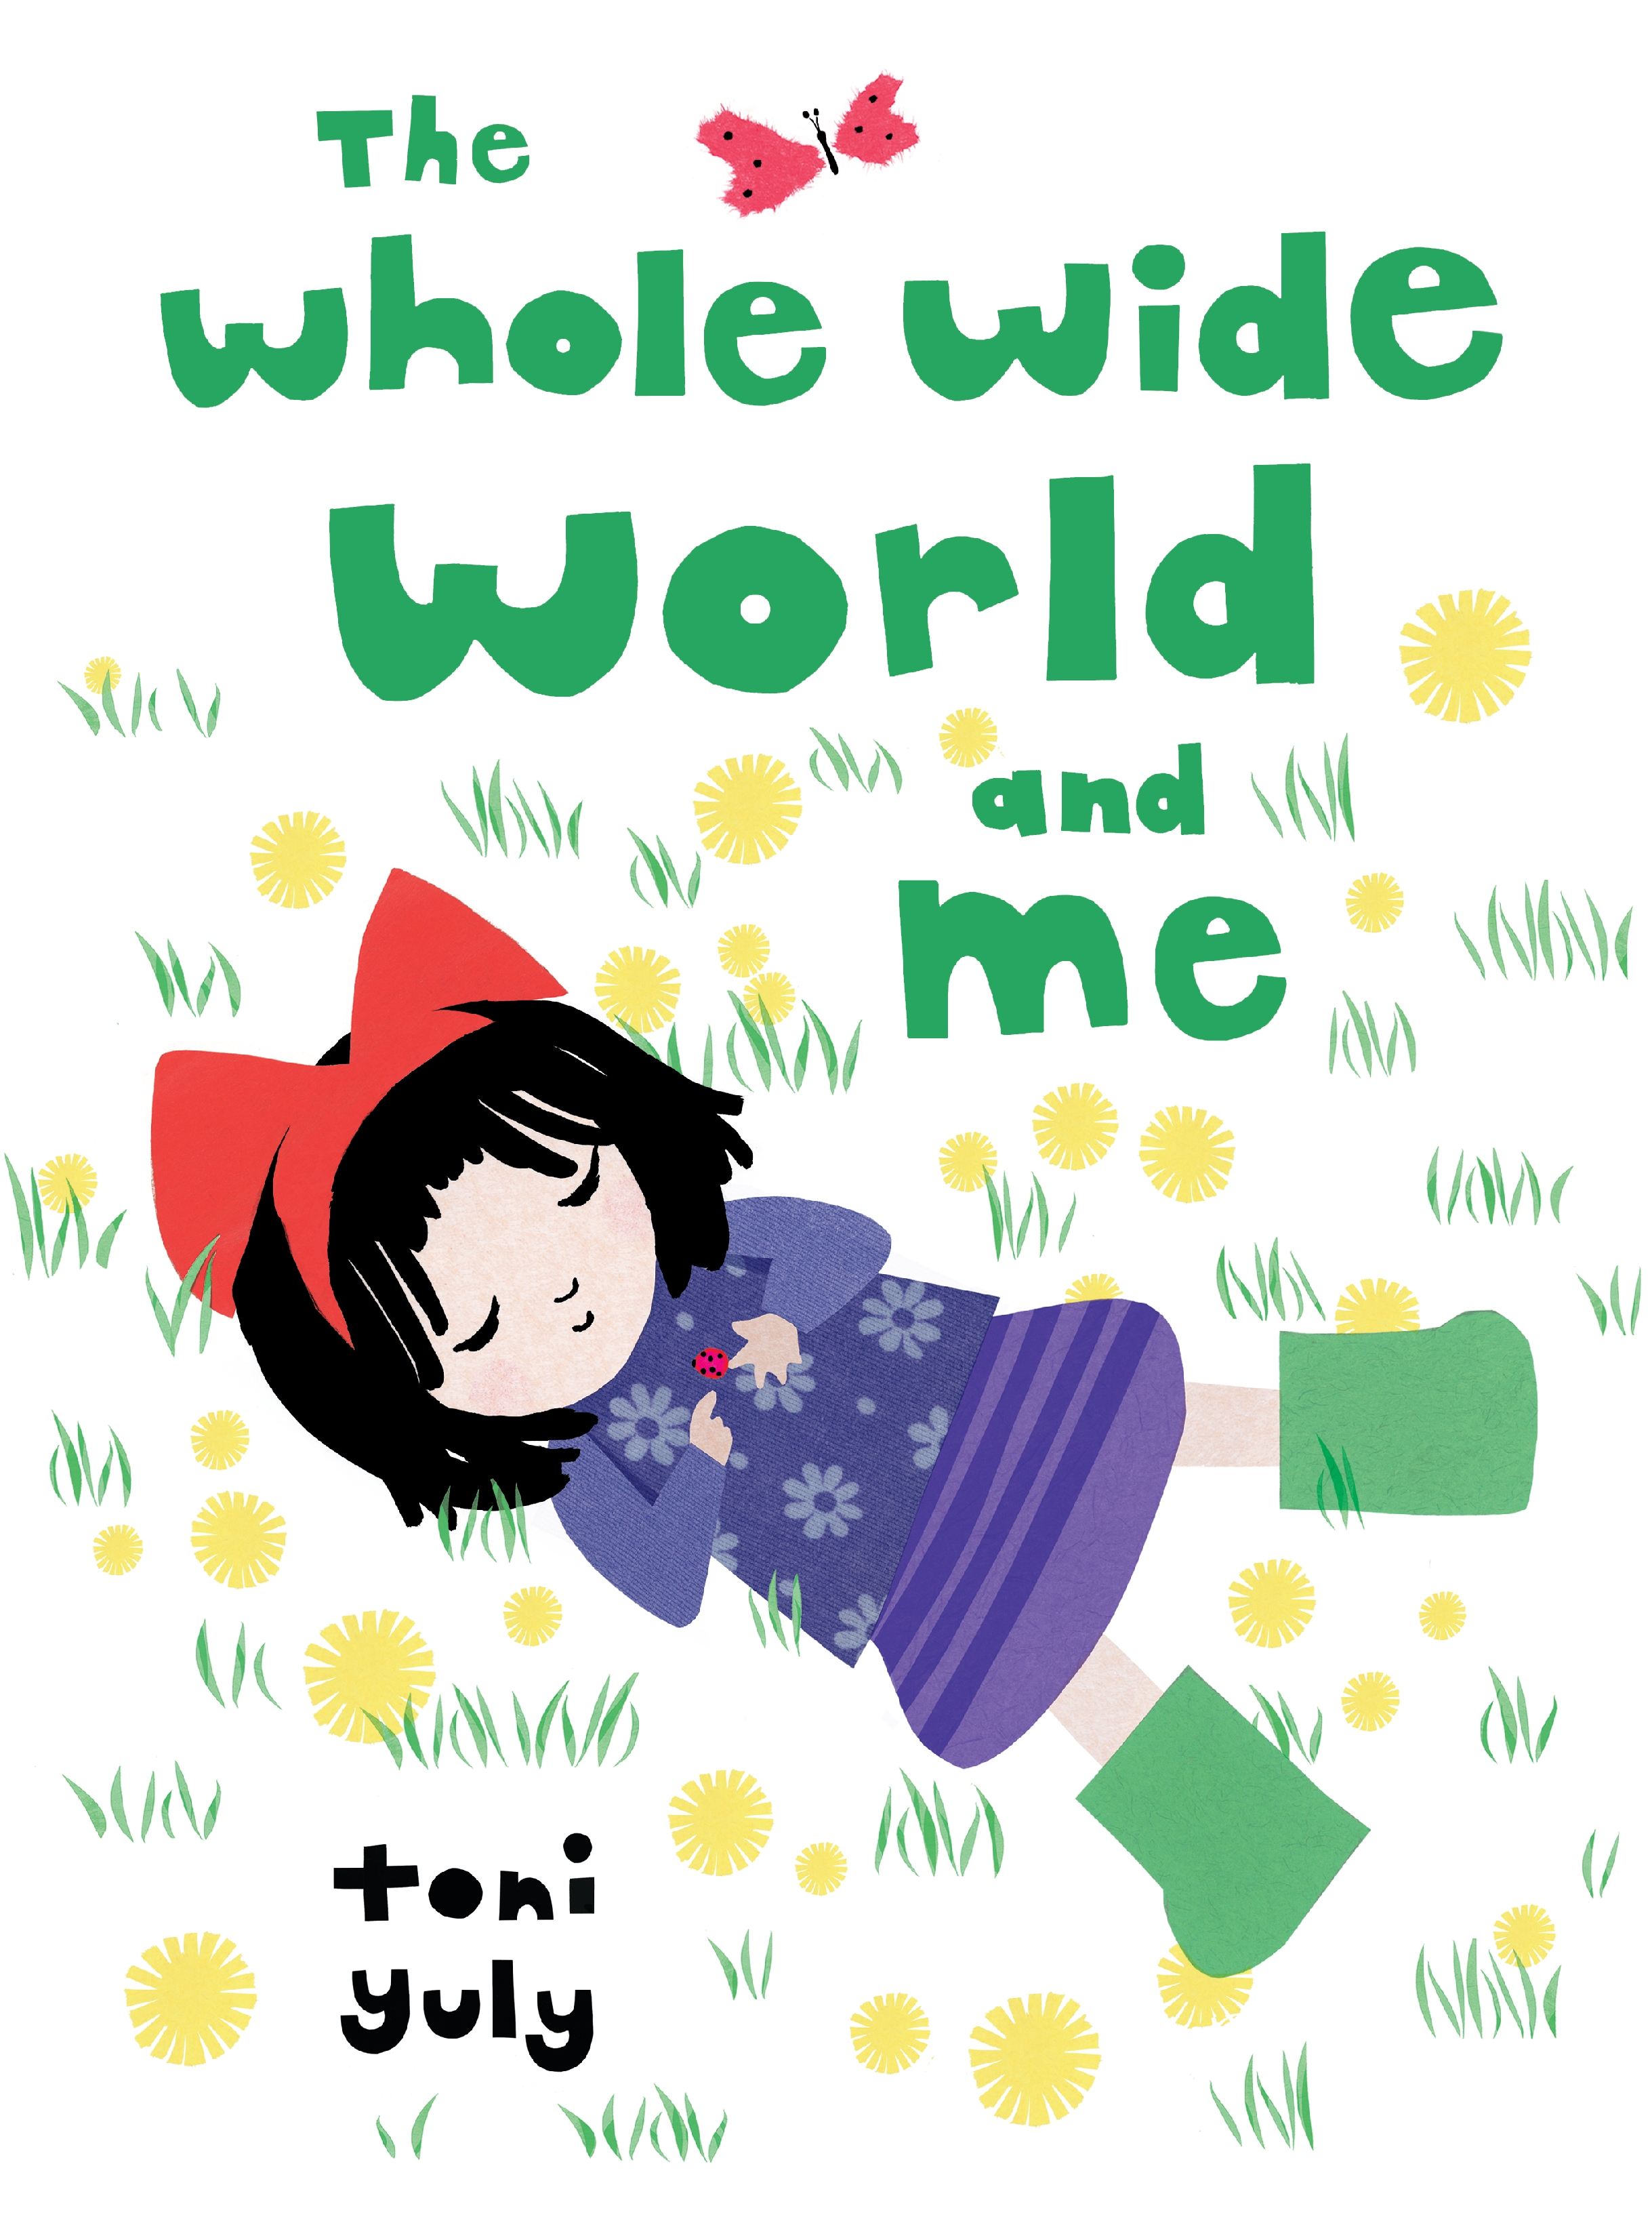 Yuly, Toni 2019_02 WHOLE WIDE WORLD AND ME - PB - RLM LK (To Be Updated).jpg